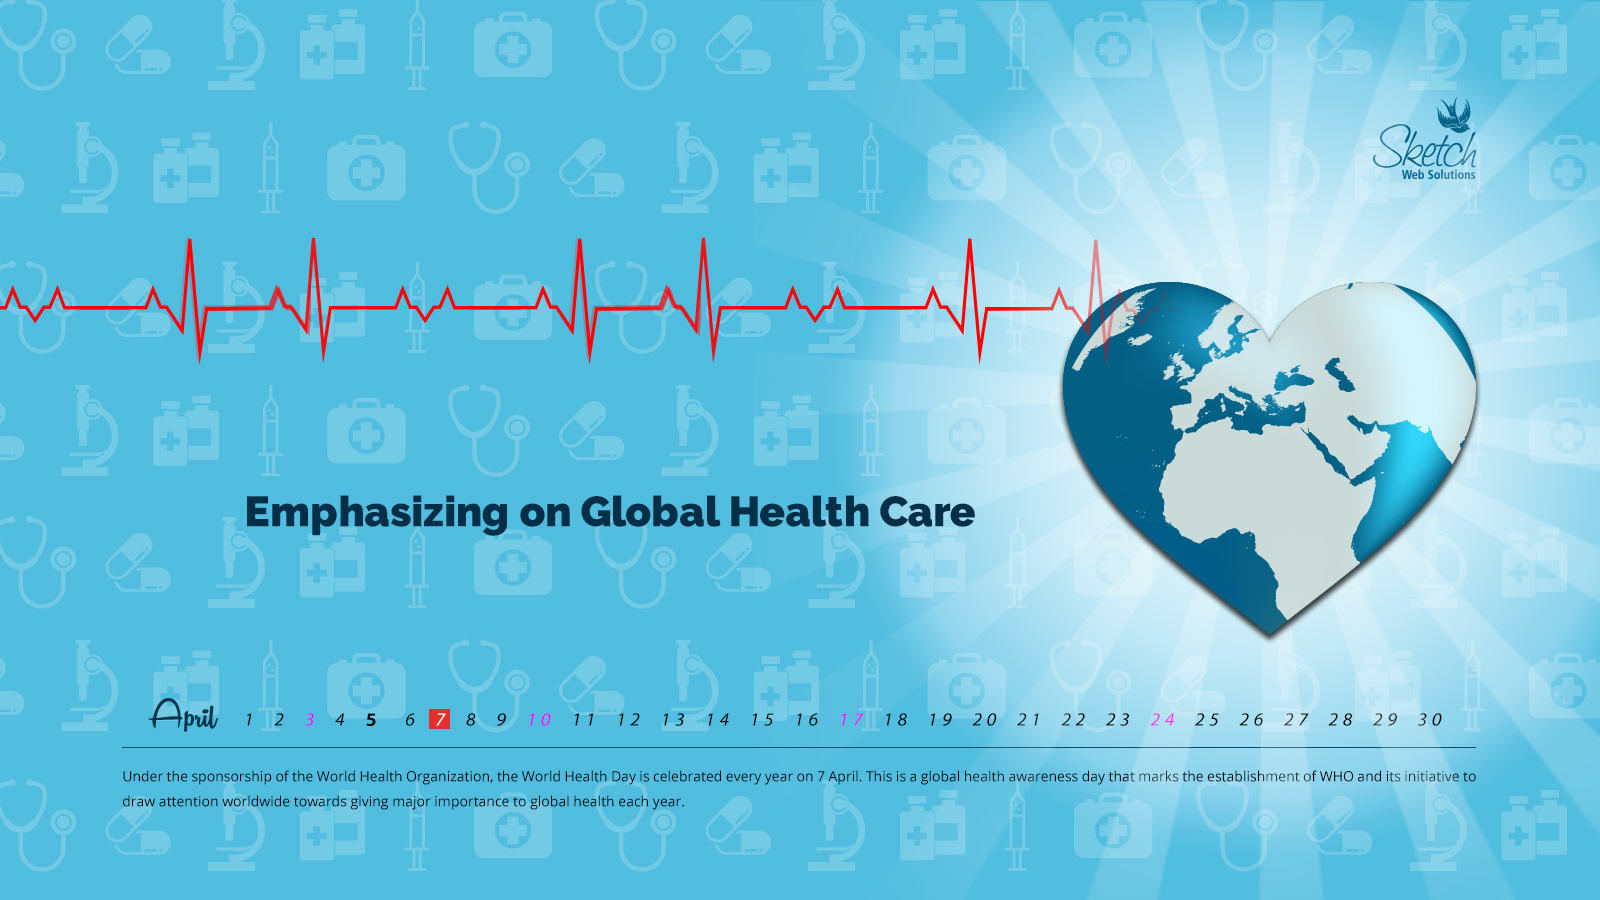 Emphasizing on Global Health Care